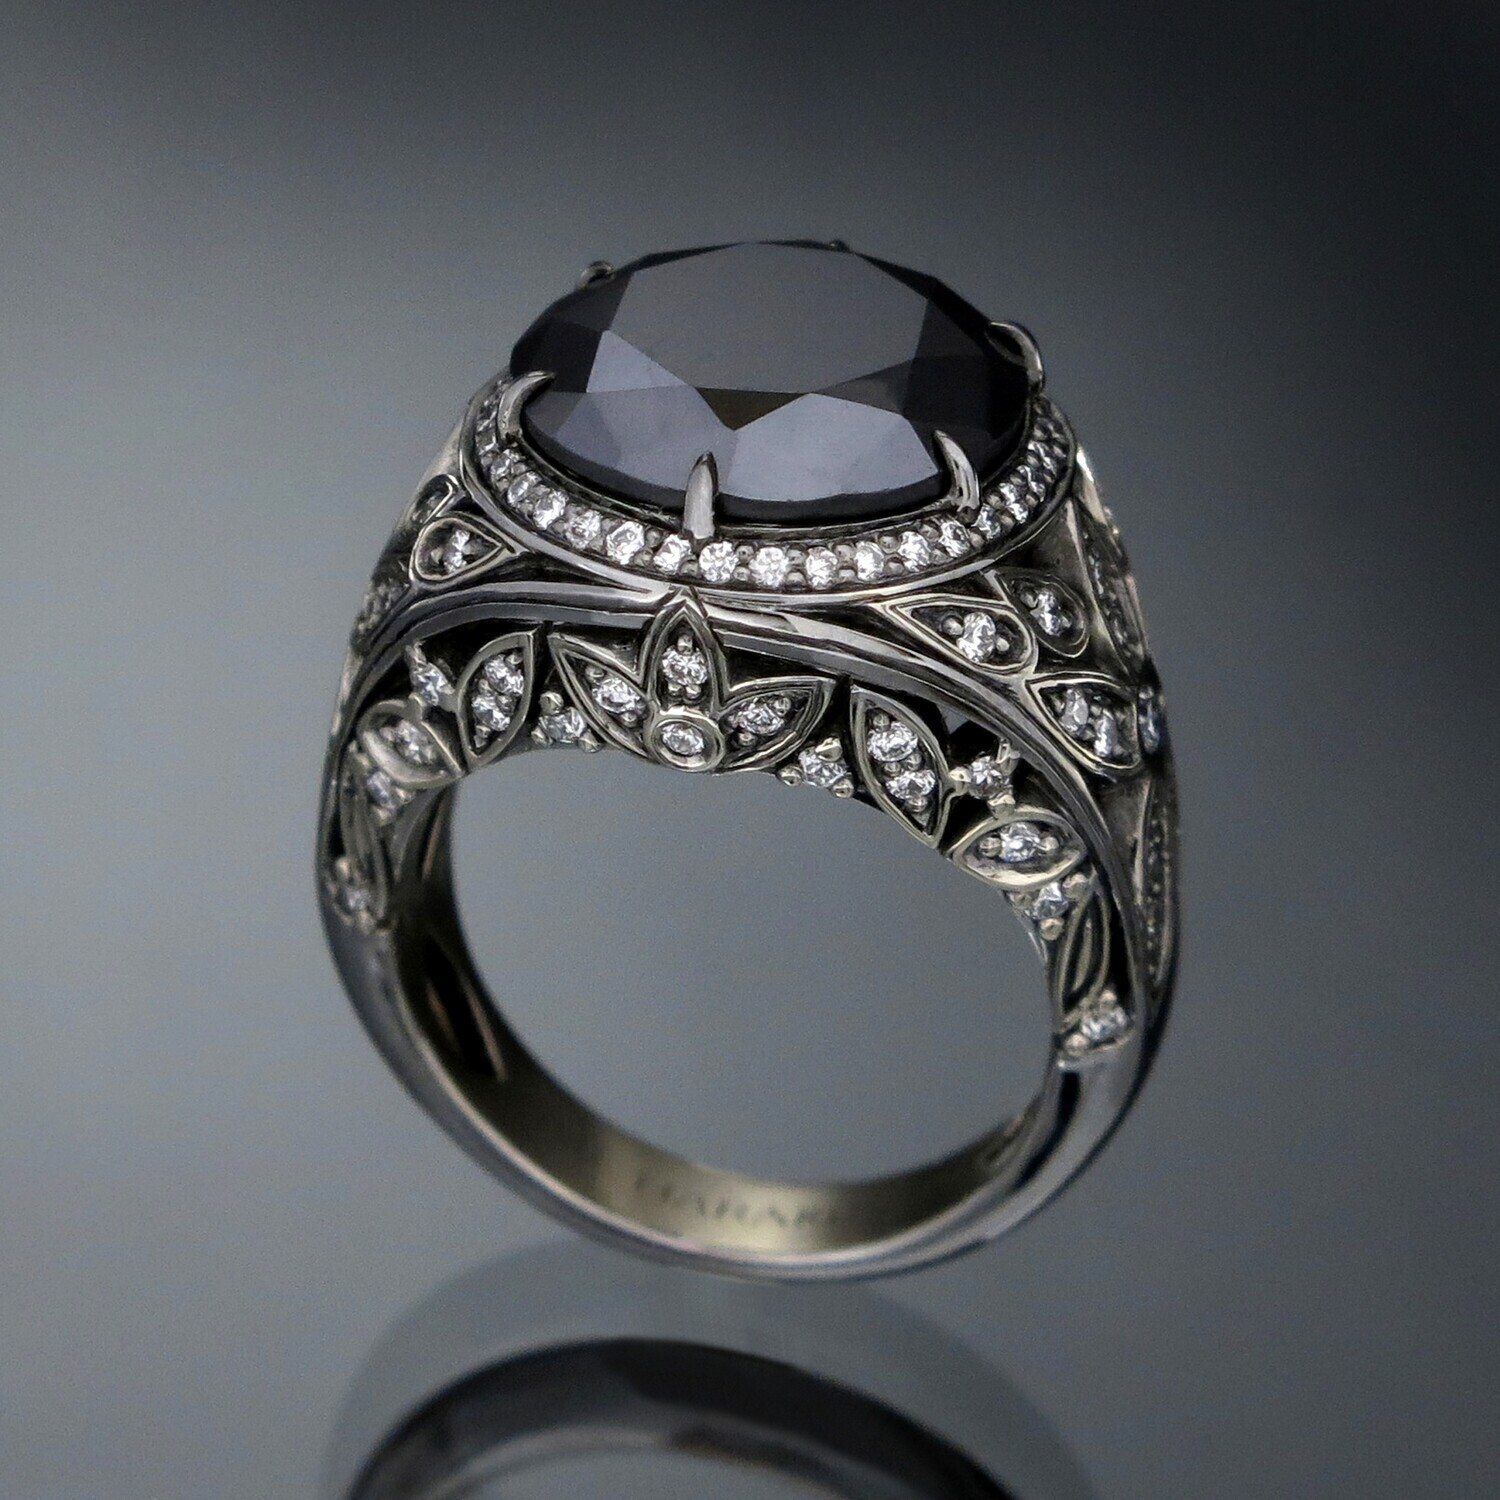 18K Gold Ring with Black and White Diamonds, BD001R